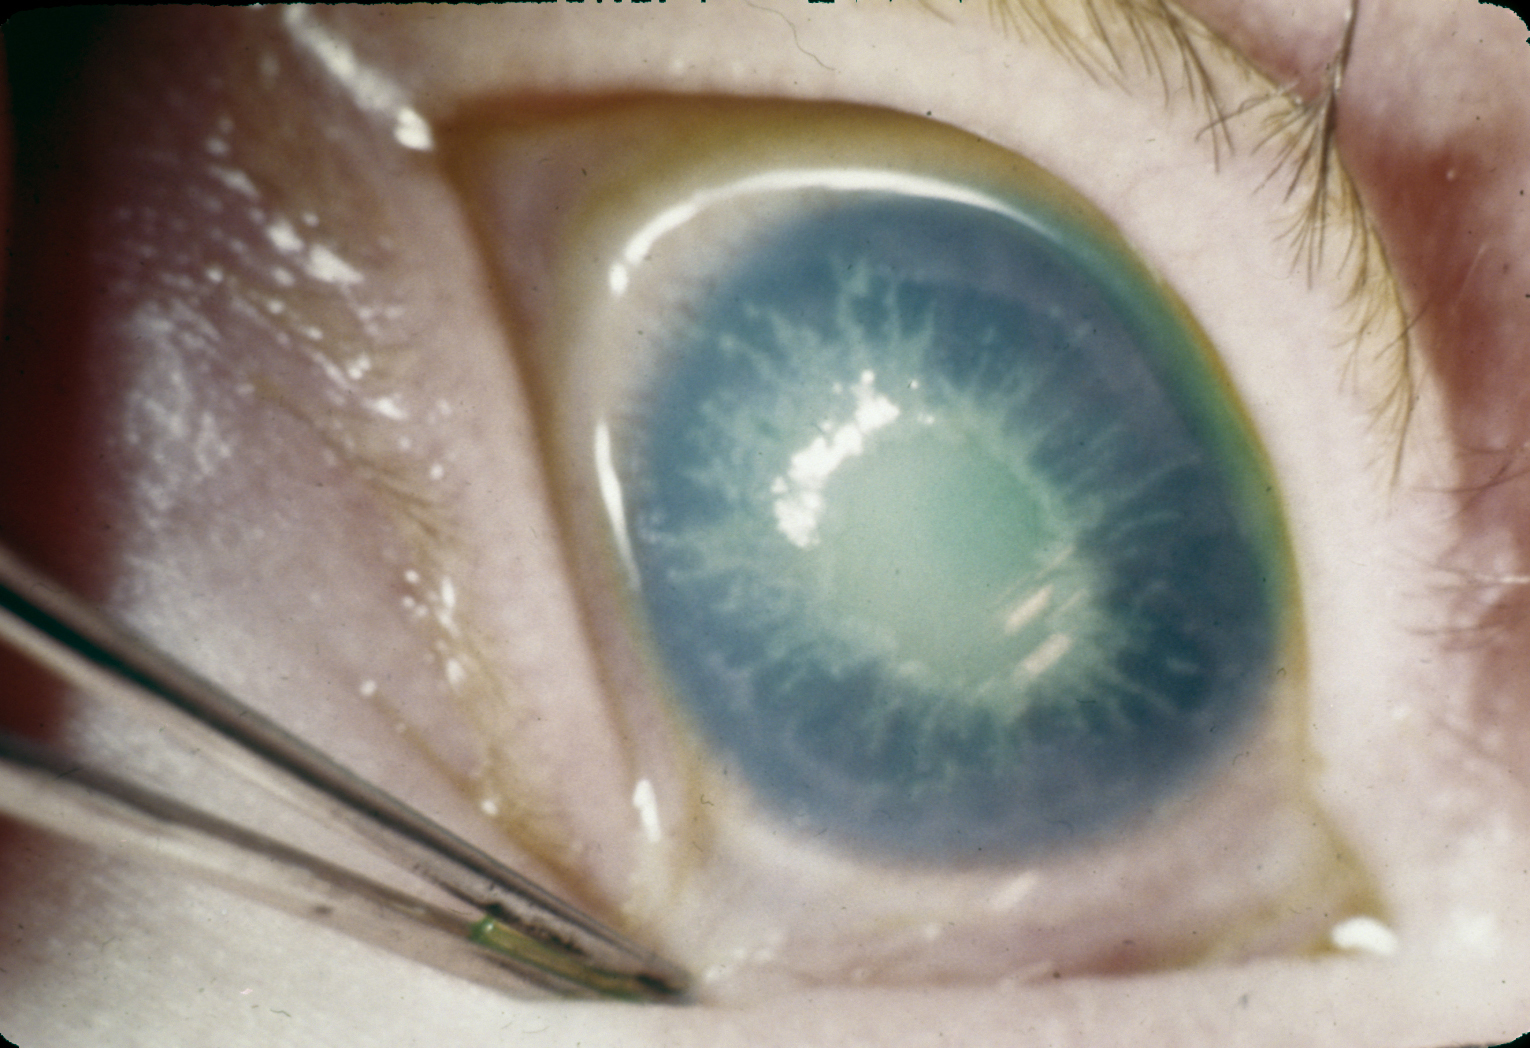 Corneal opacities in tyrosinemia